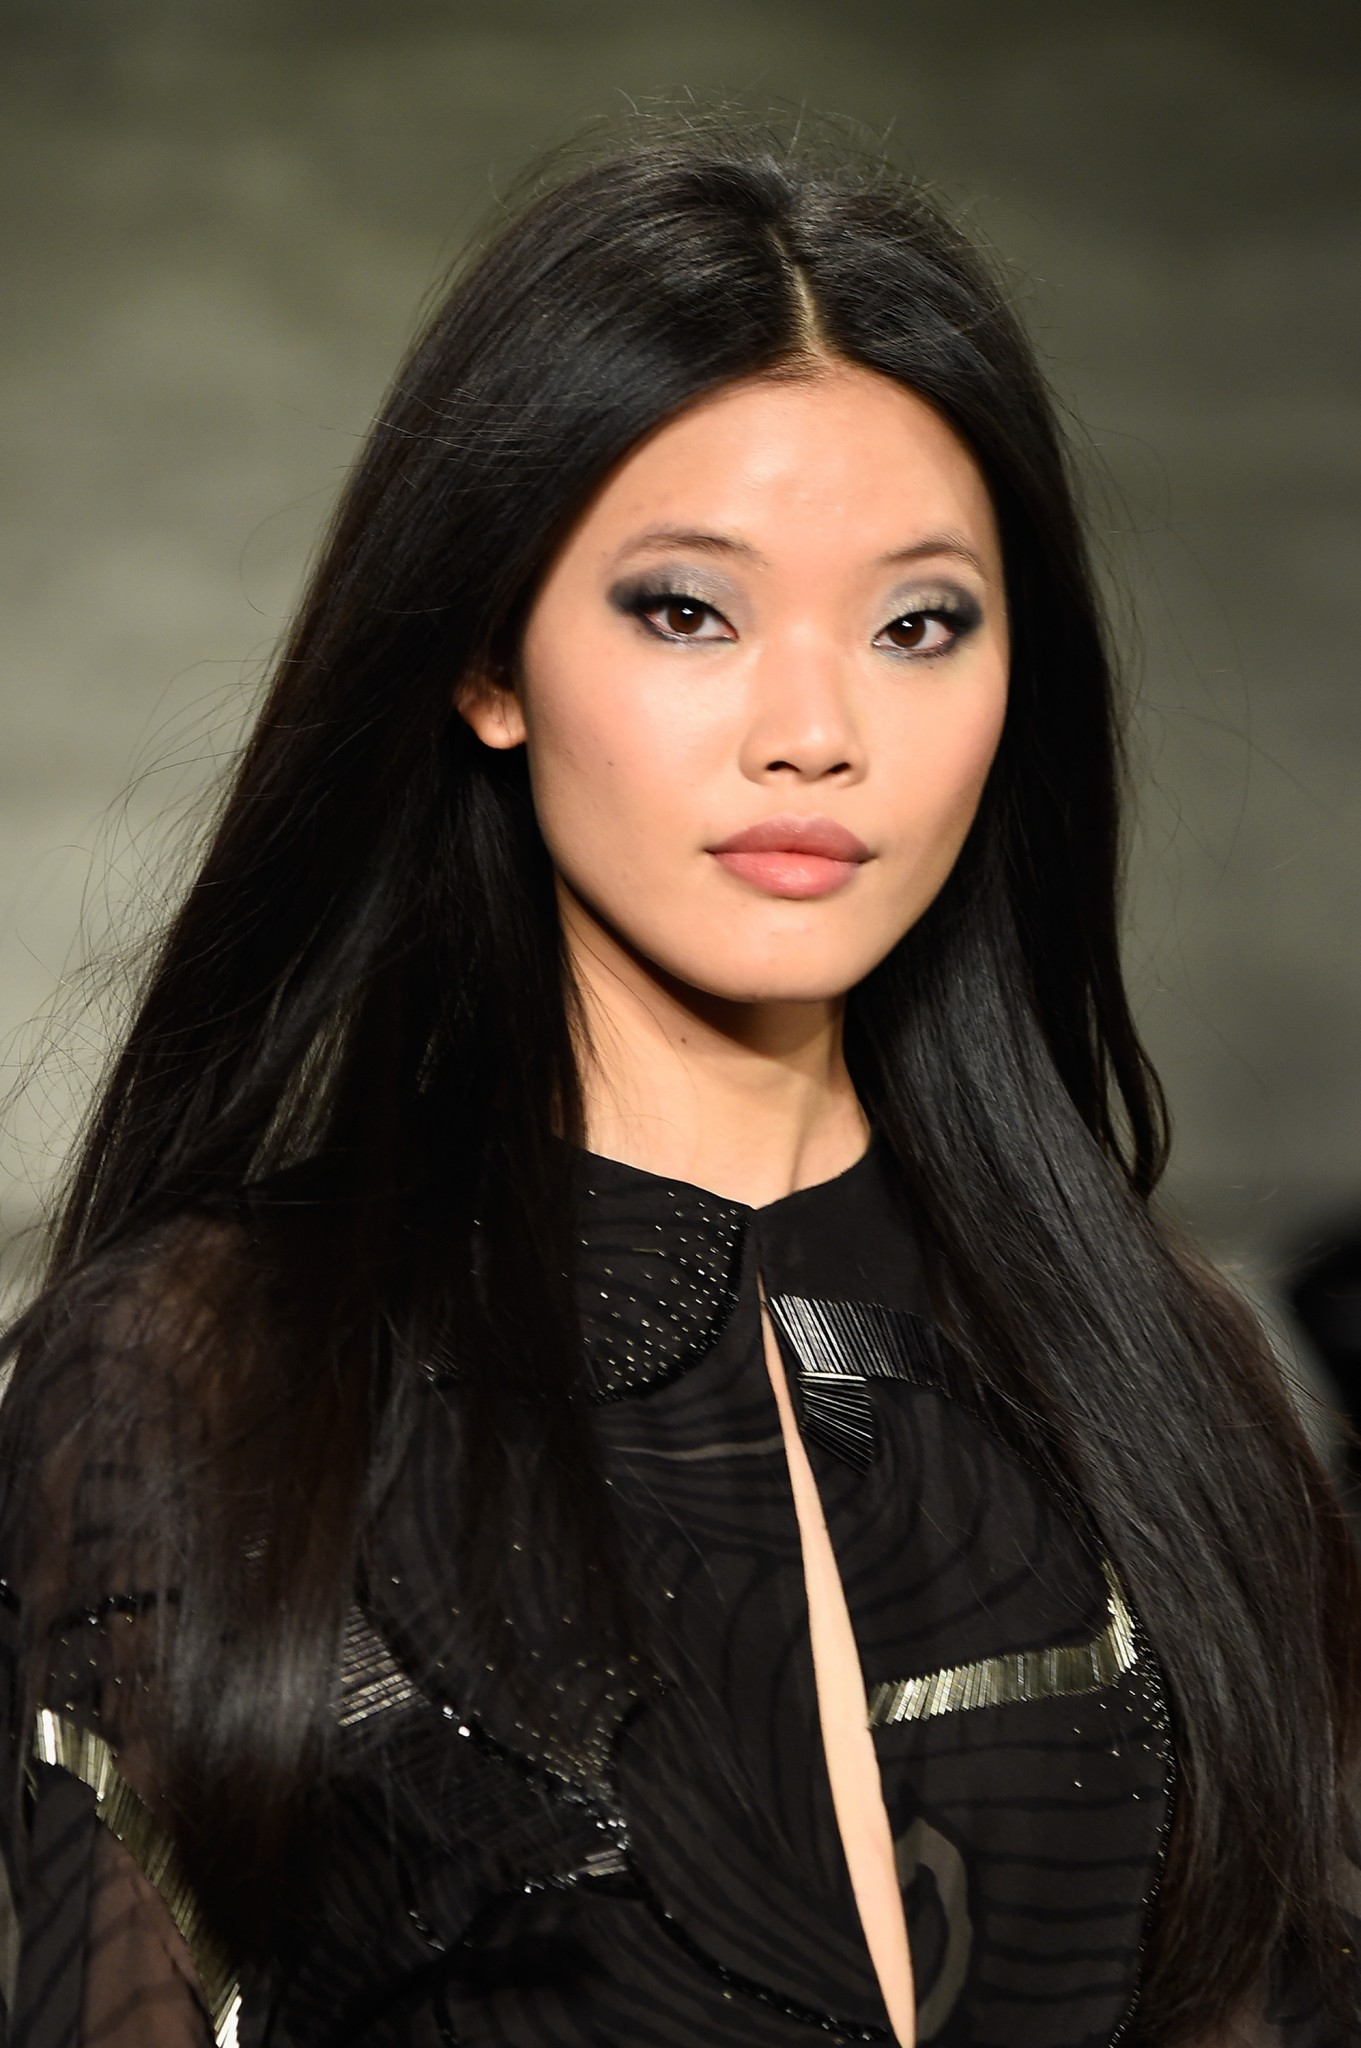 Credit: Getty Images | Rick created makeup looks for Pamella Roland's fall 2015 collection, inspired by Paris in the 70s.